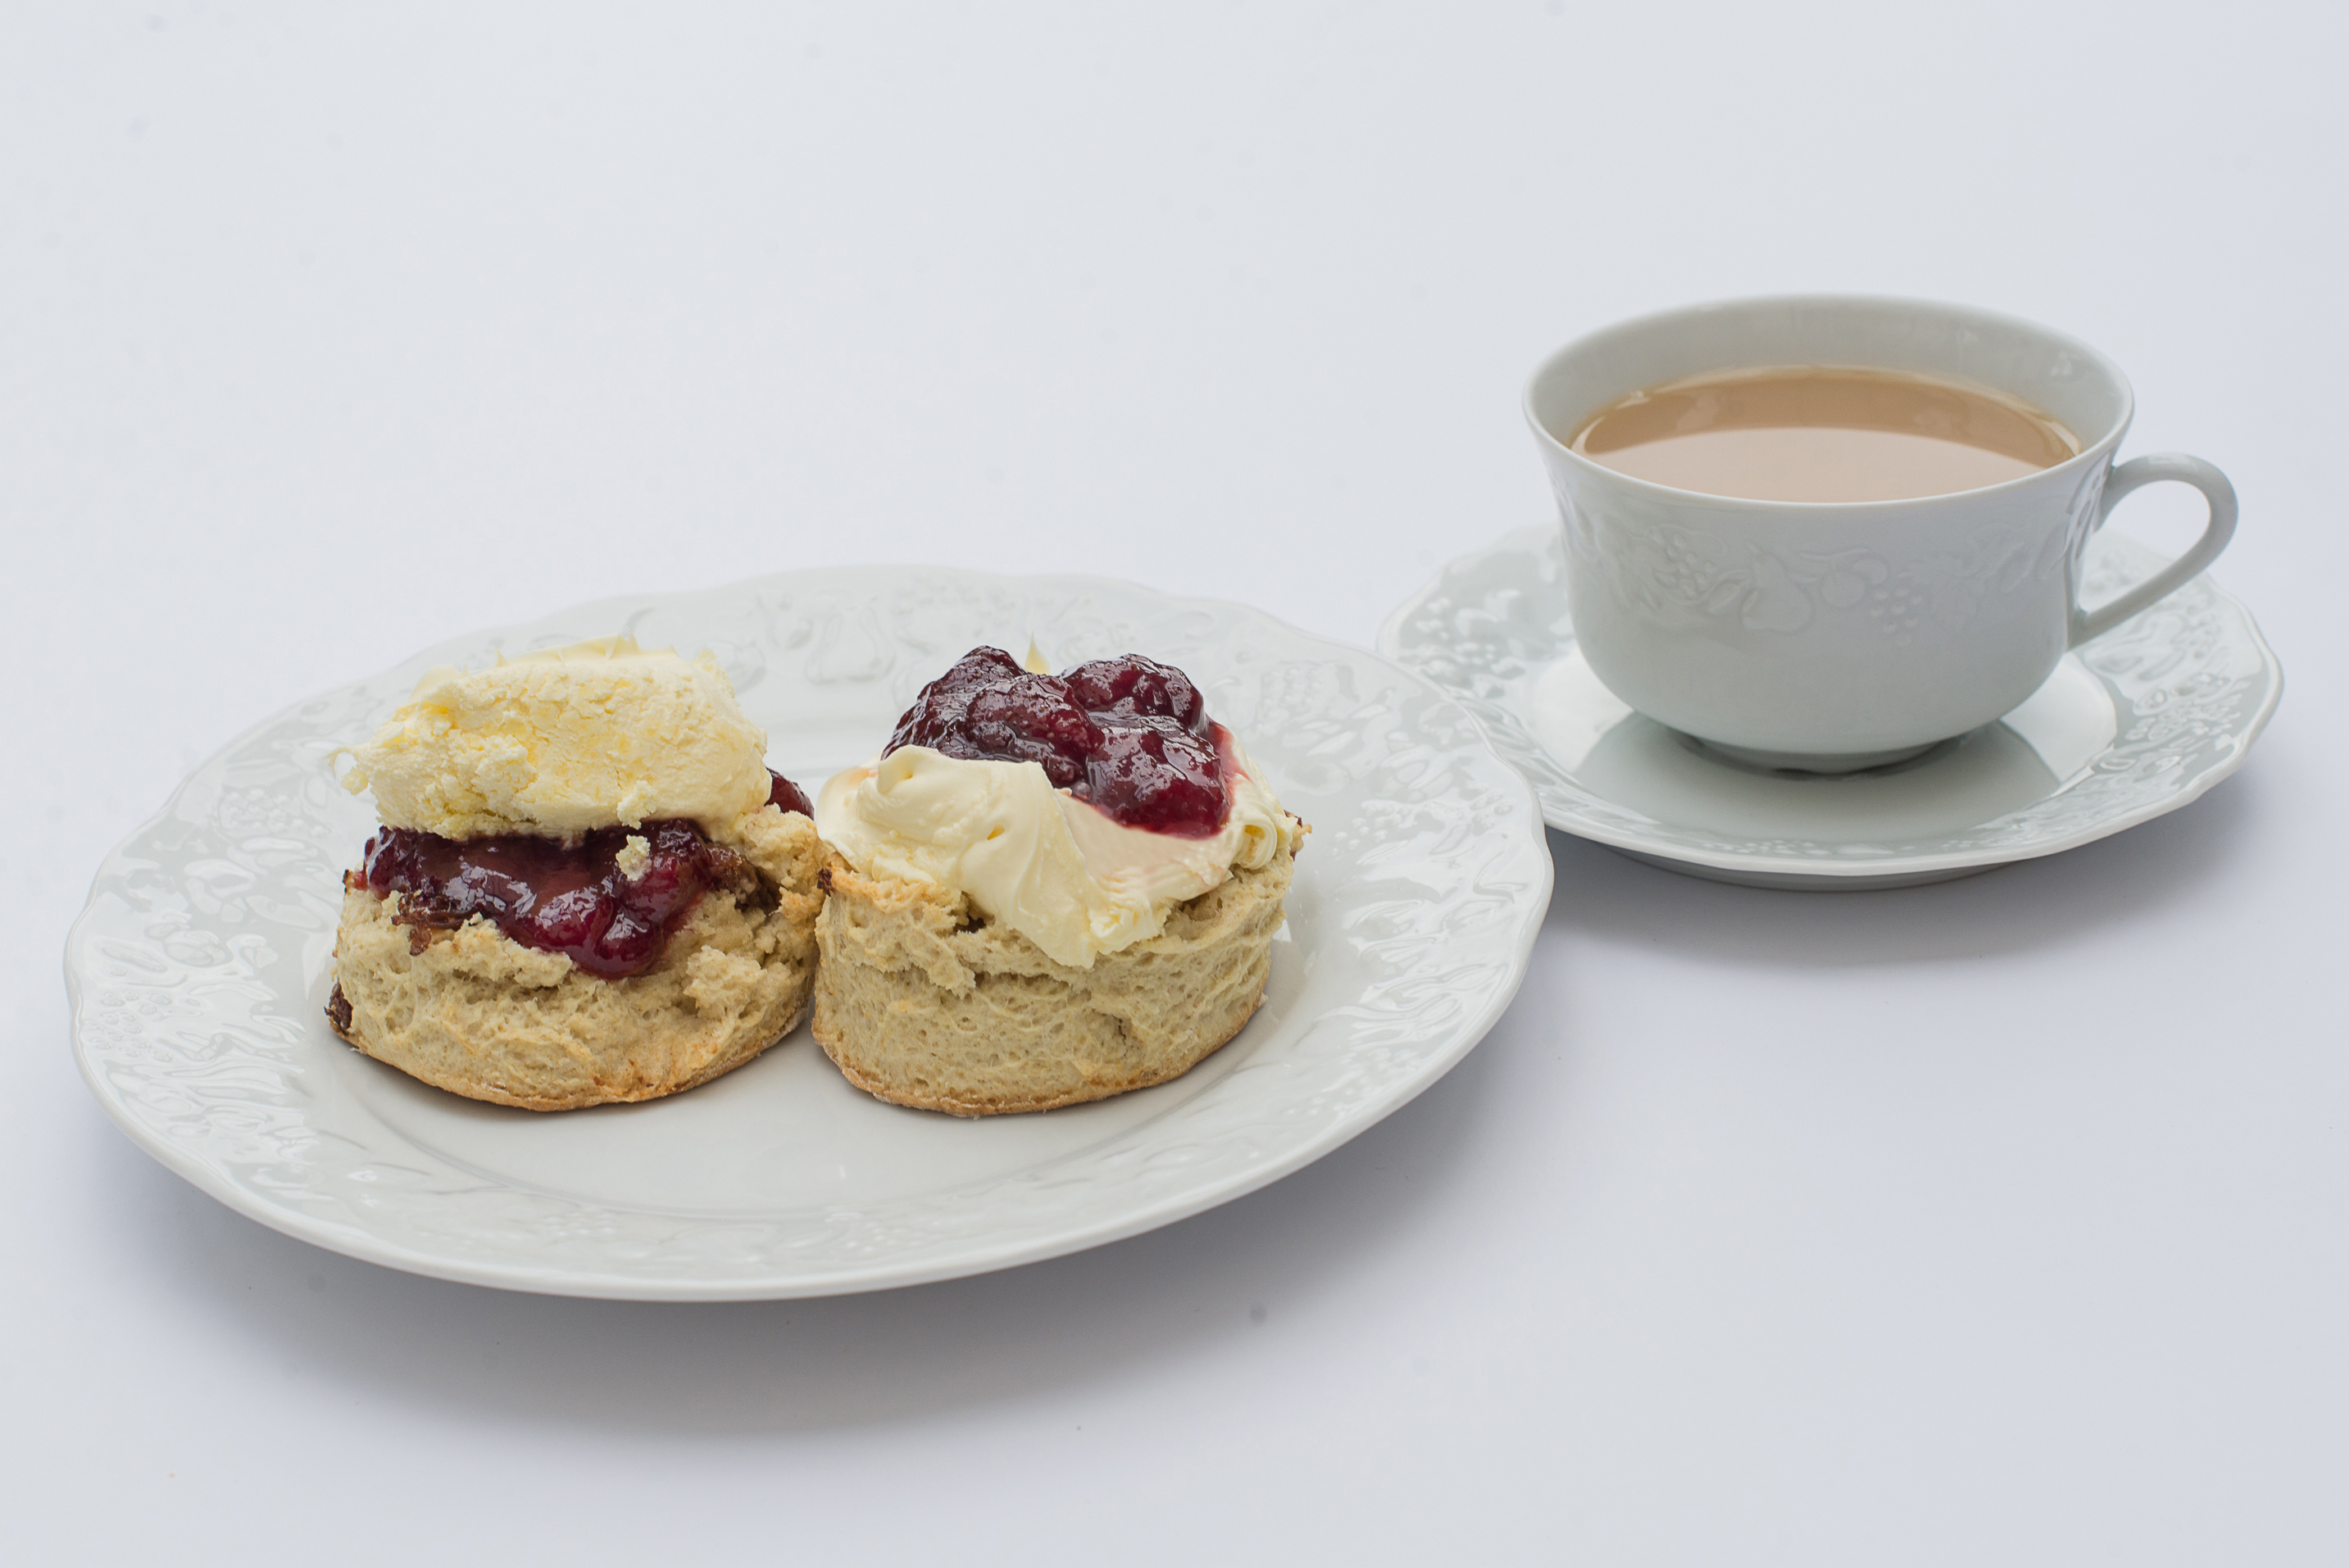 Scones & English Cream Tea by The English Cream Tea Co